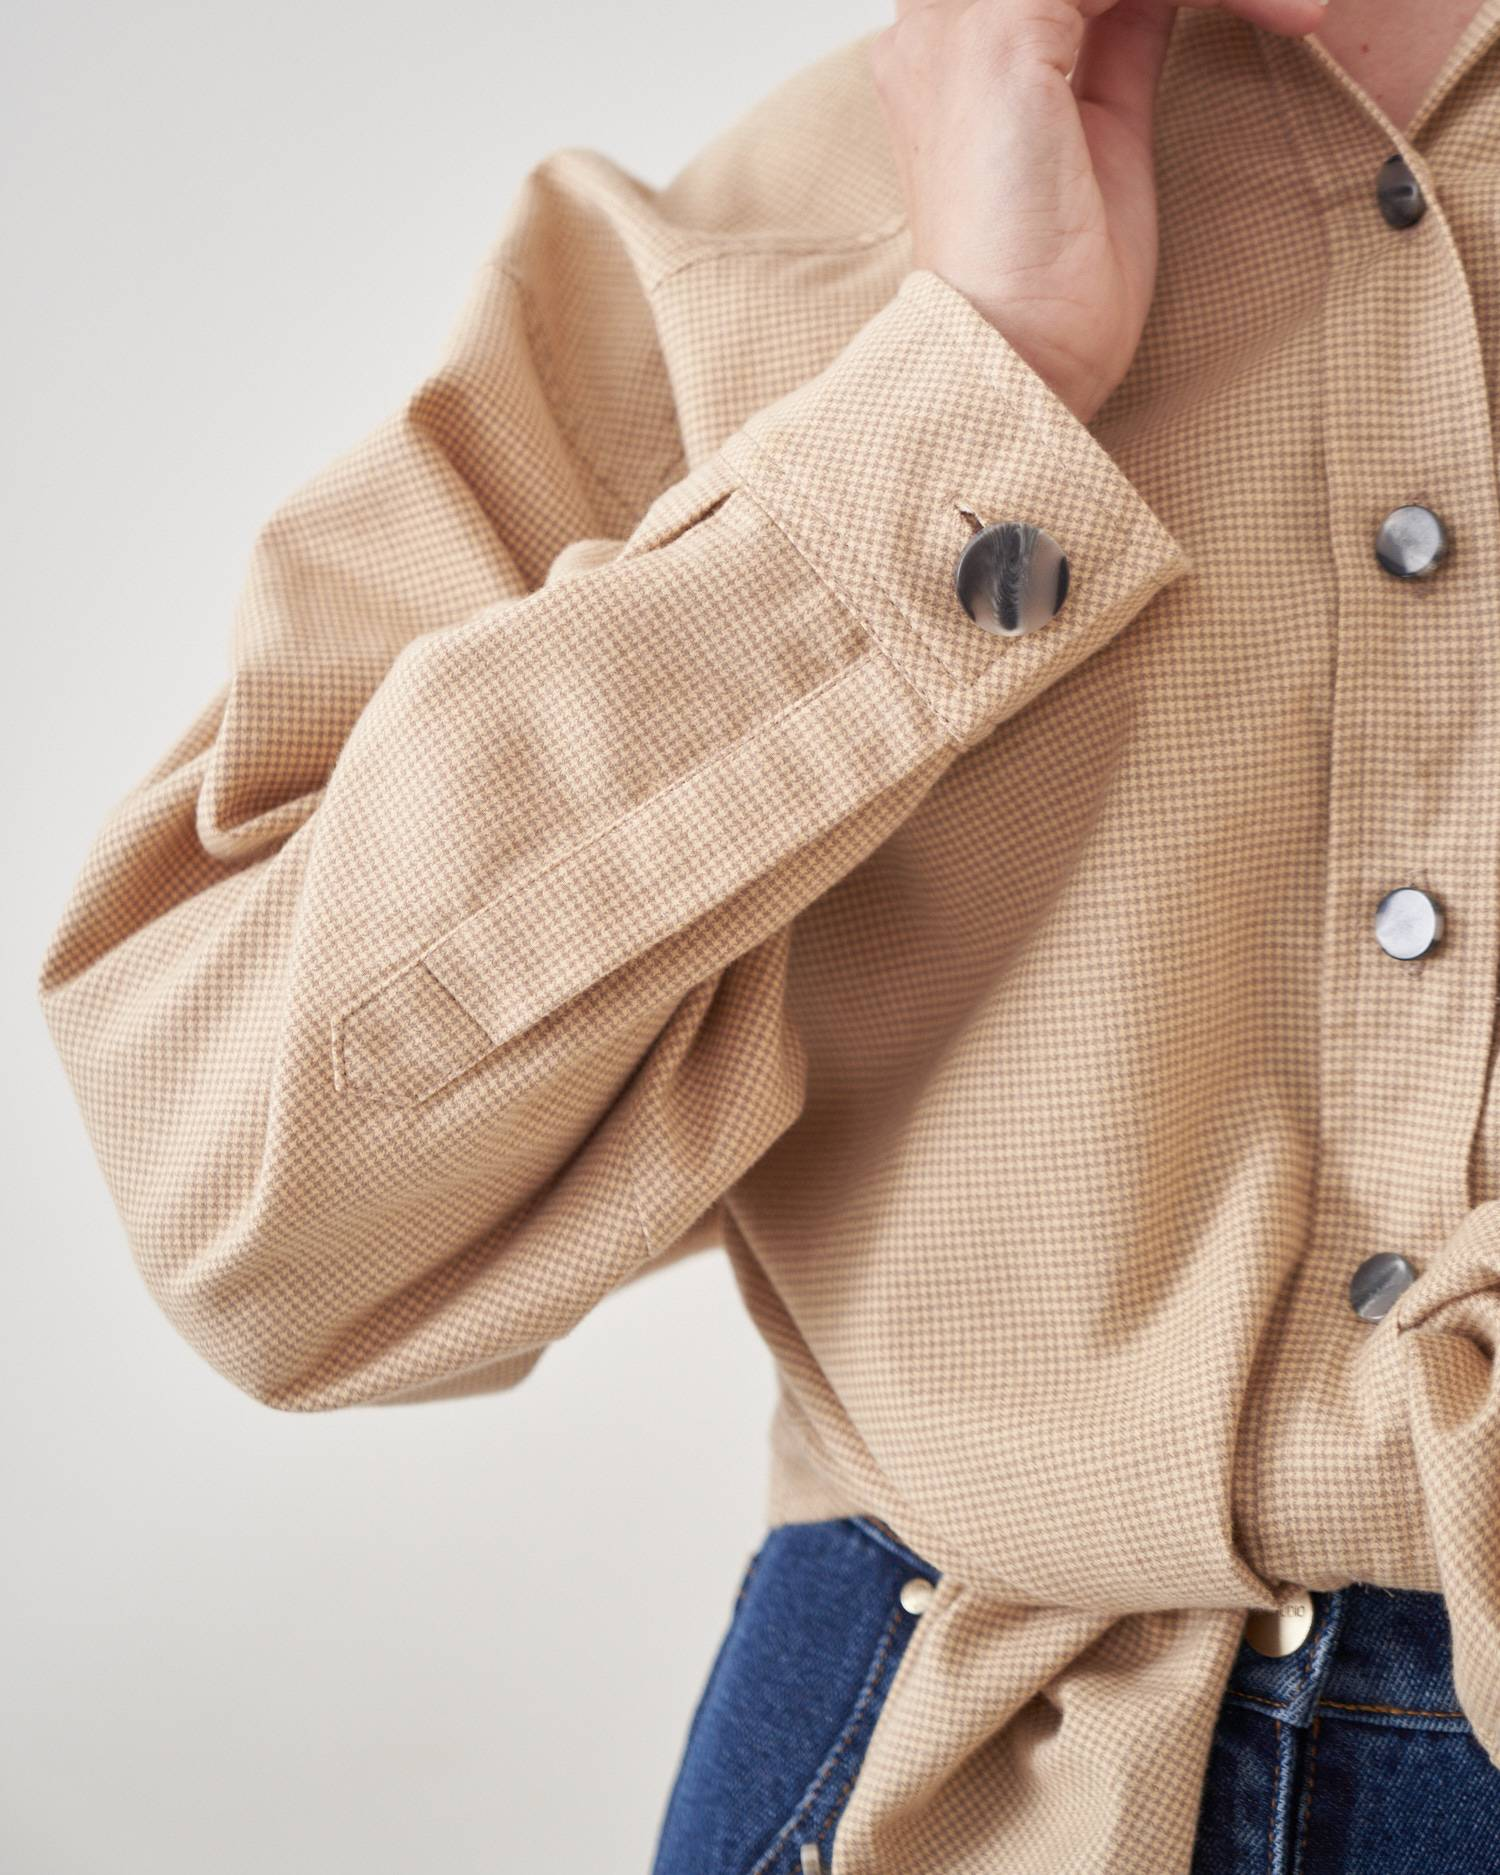 Button placket shirt